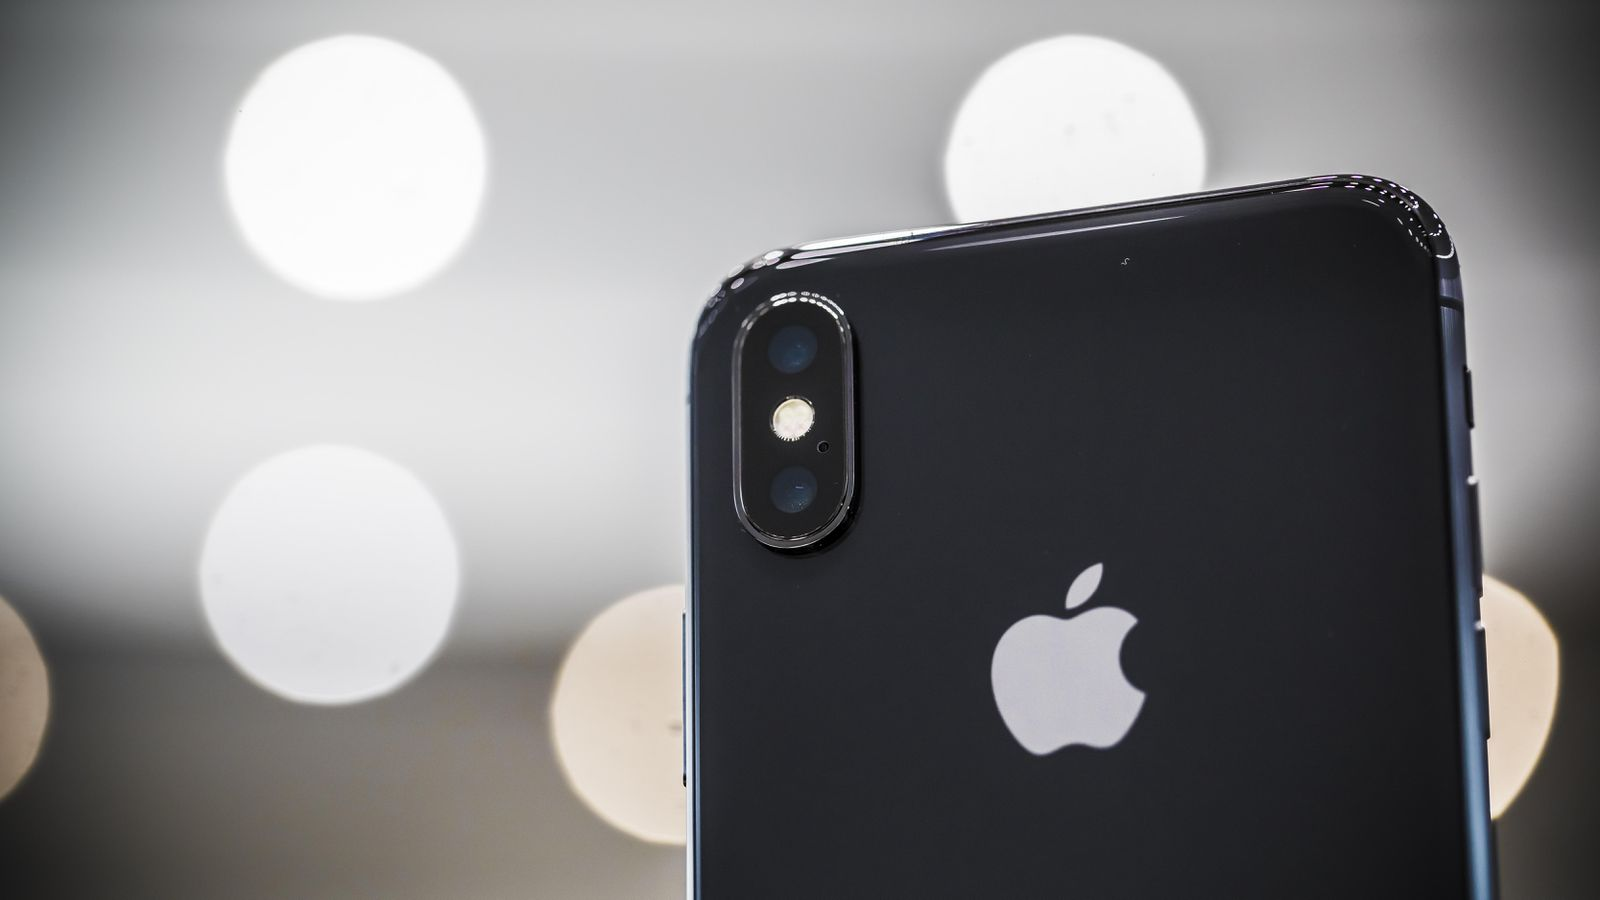 iPhone X hands-on 11